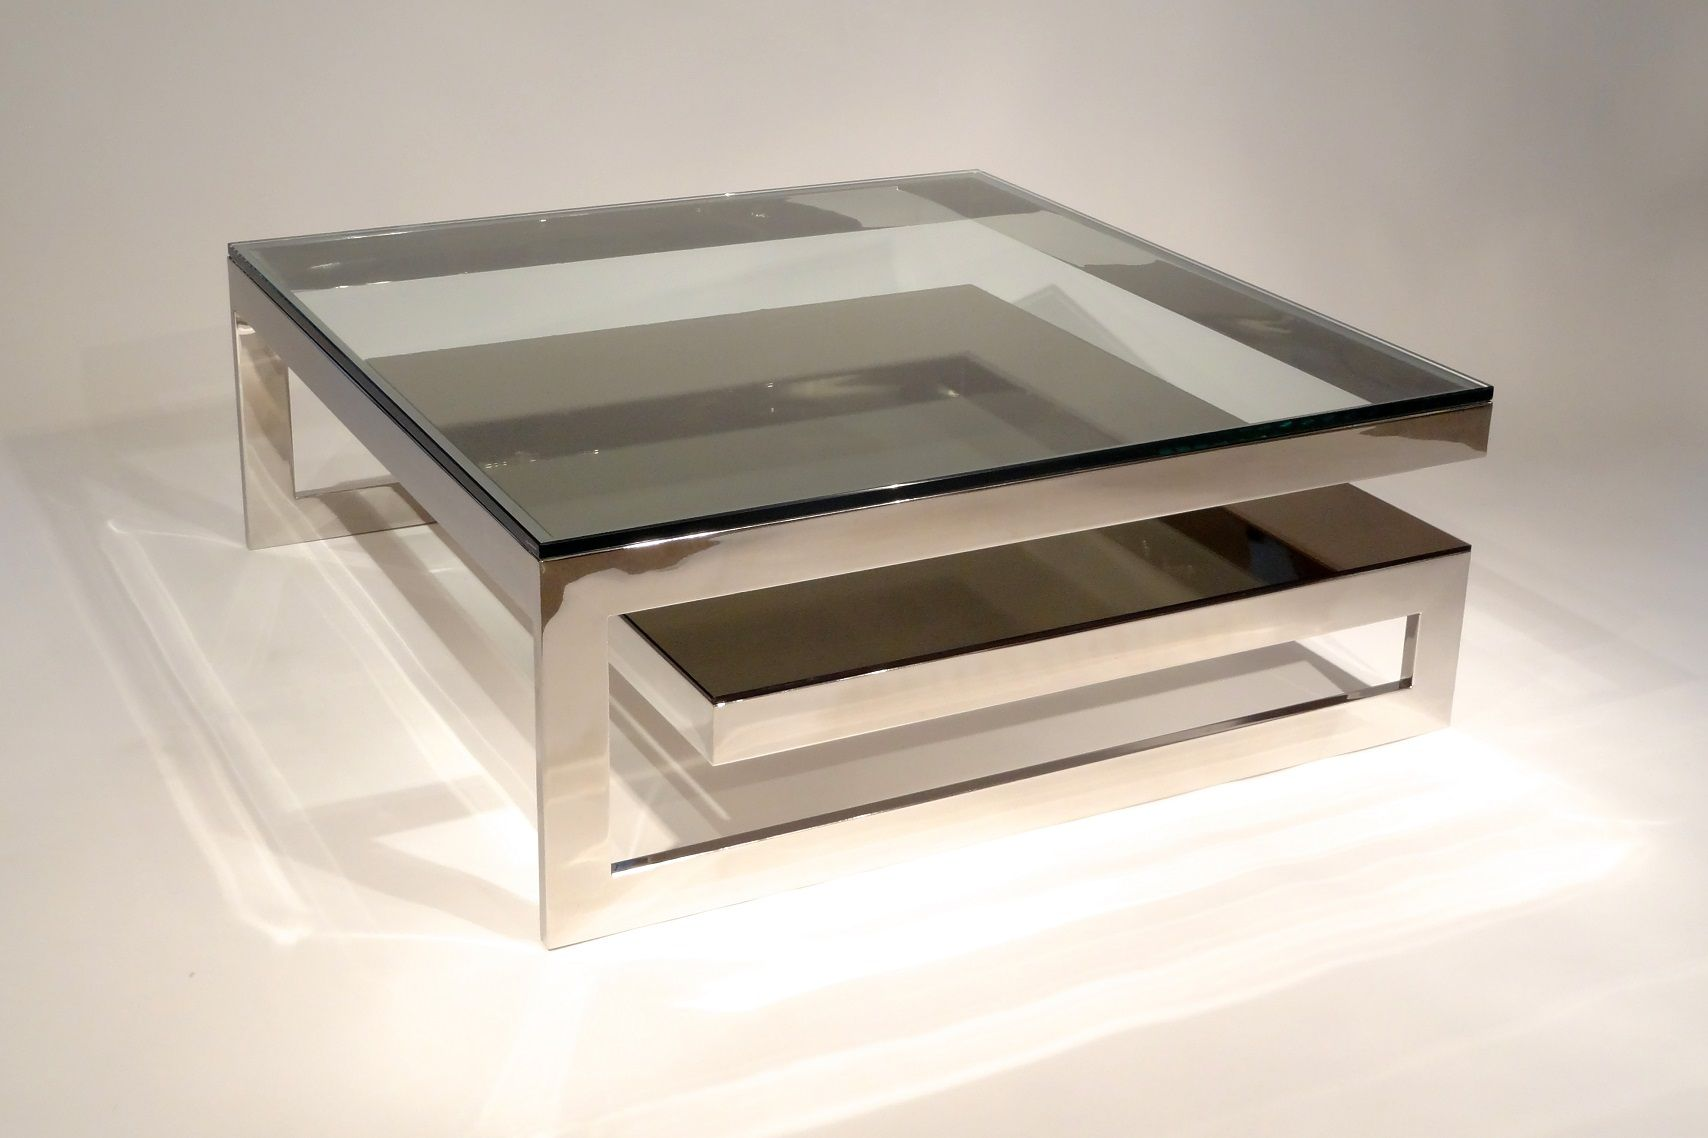 Attractive Glass Coffee Table With Stainless Steel Table Legs For Luxury Living Room Furniture Idea Centros De Mesa Mesas [ 1138 x 1708 Pixel ]